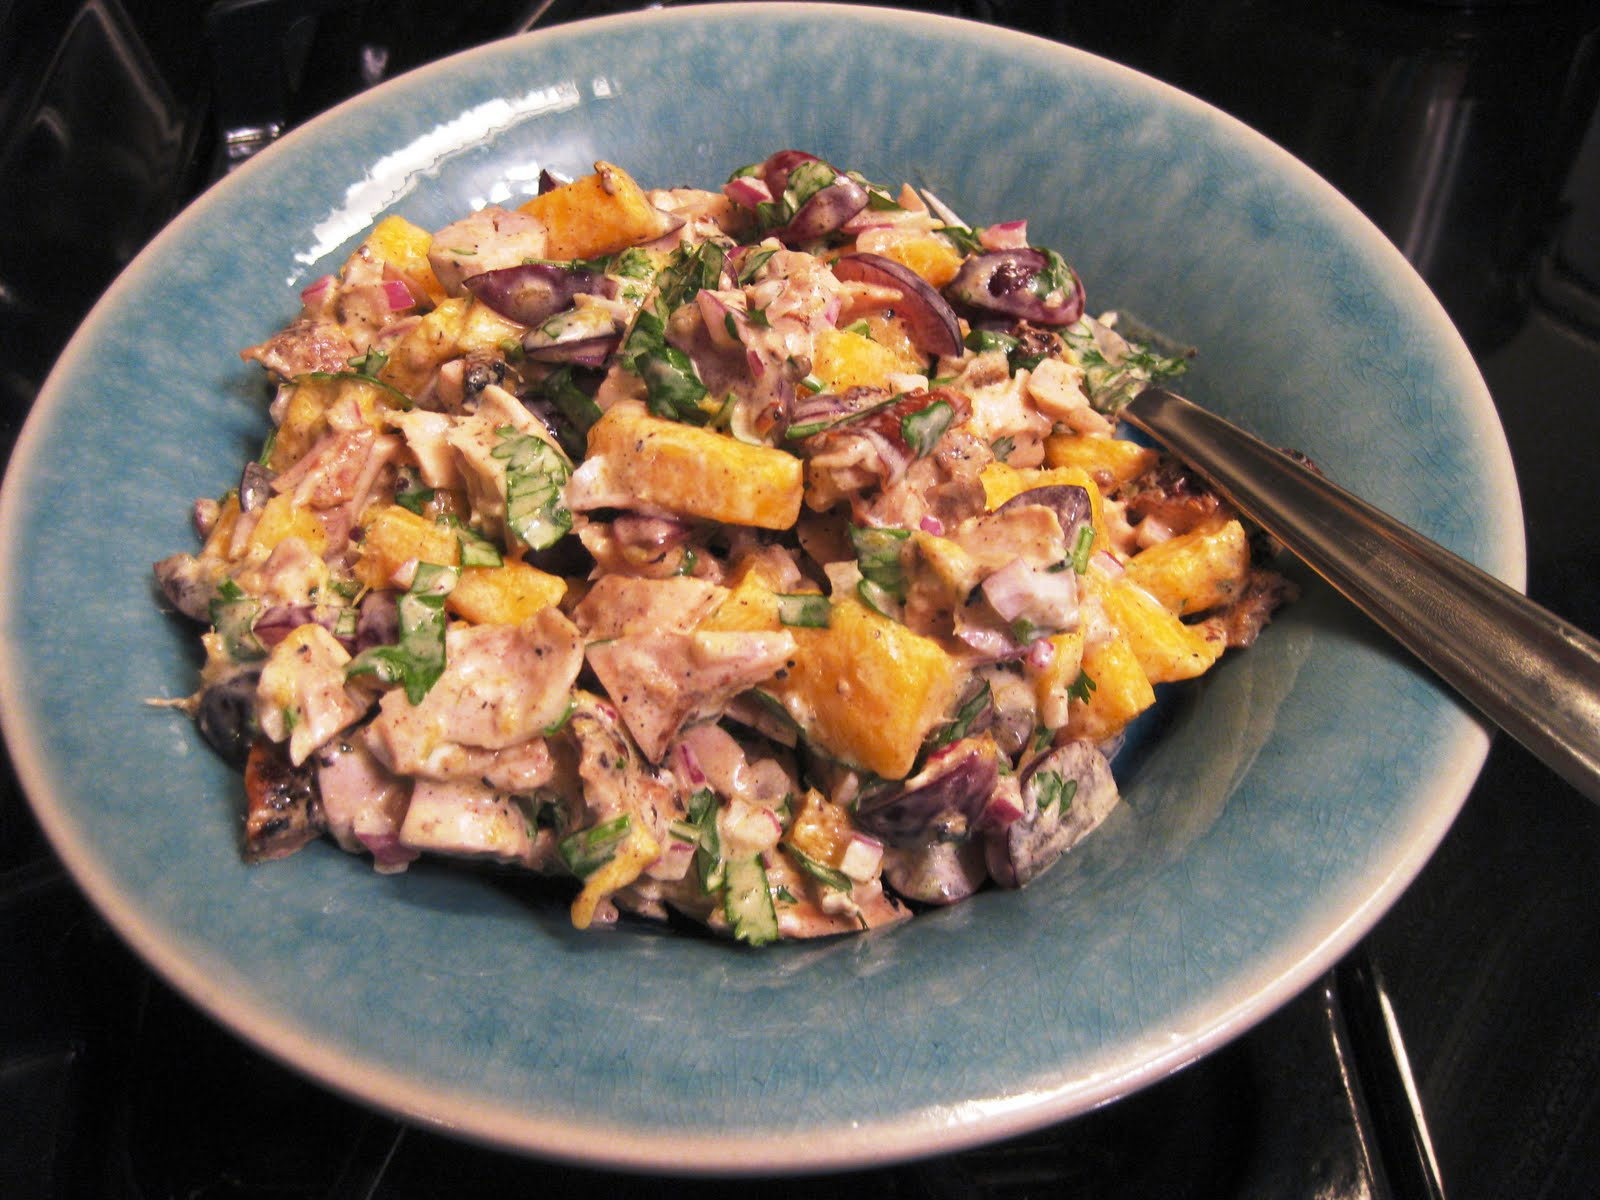 Recipe For A Jamaican Jerk Chicken Salad With Mango And Grapes Snacking In The Kitchen